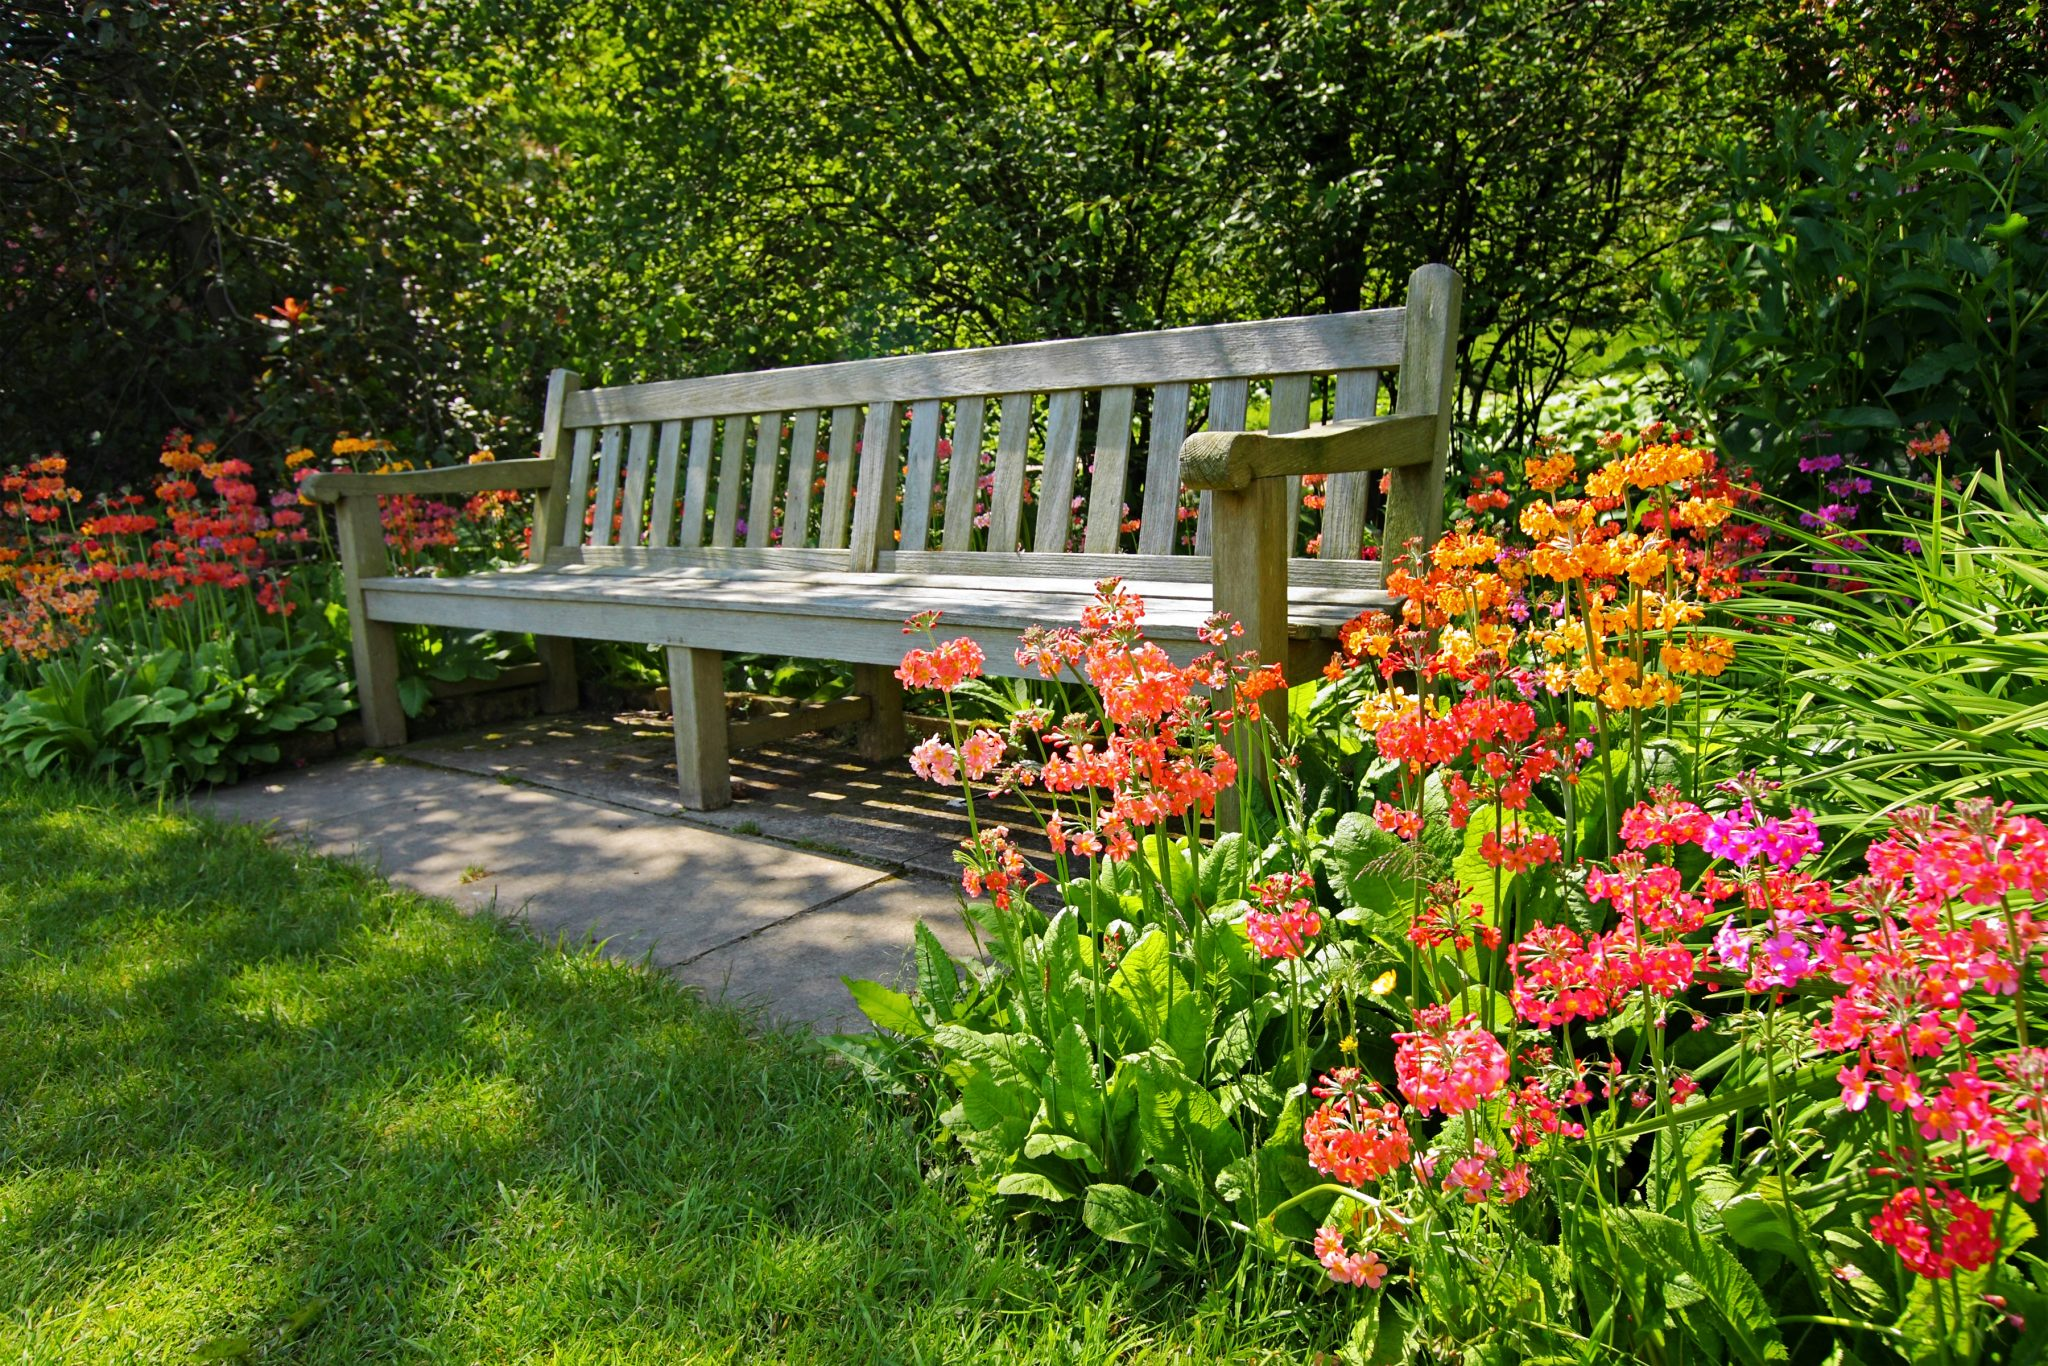 Bench in a flower garden.